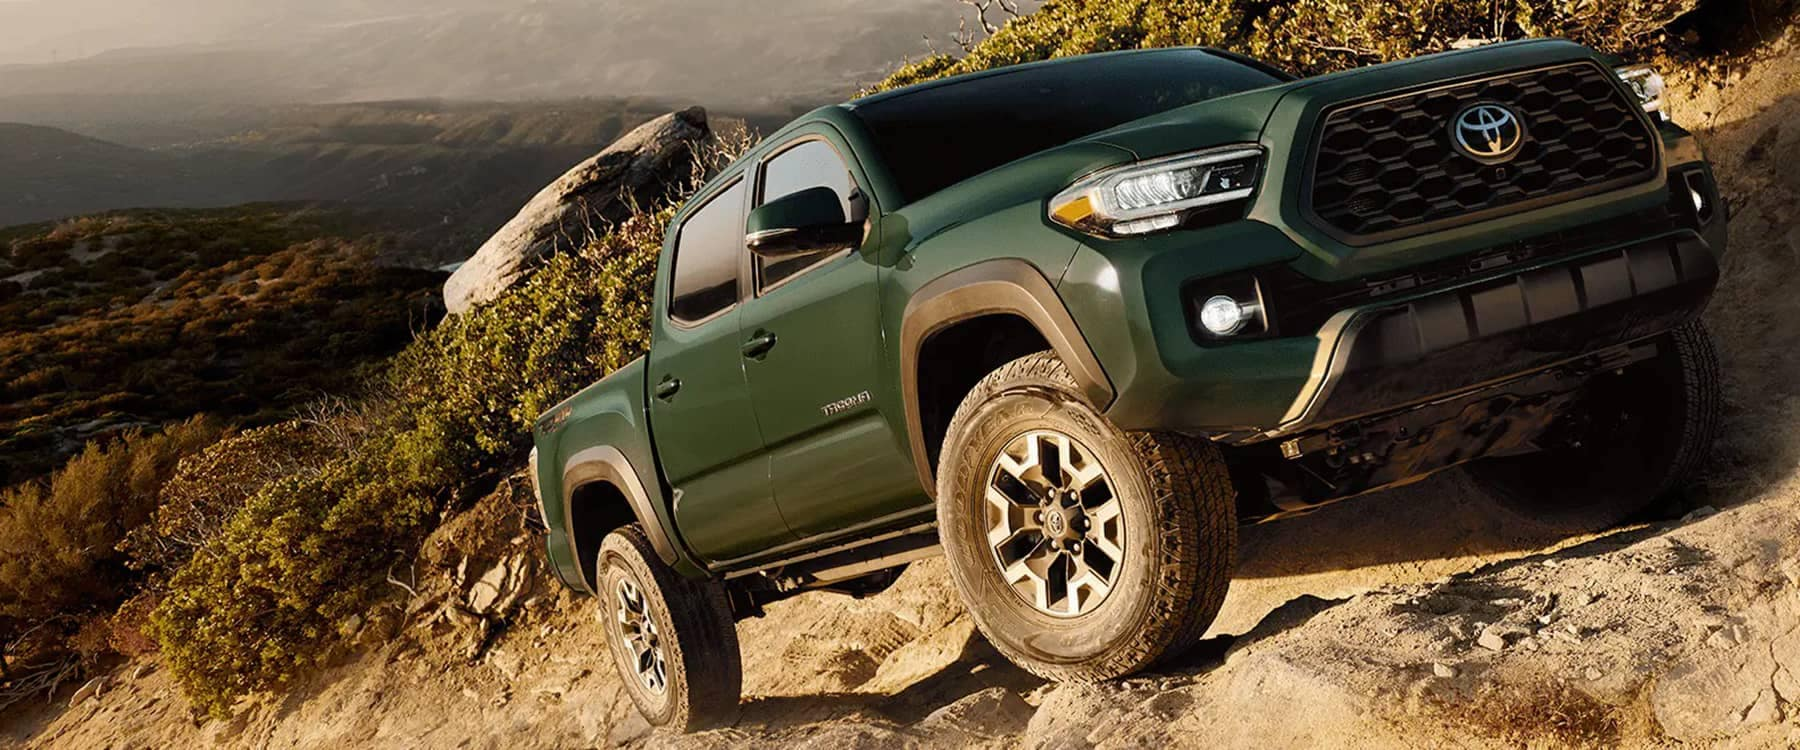 2021 Toyota Tacoma driving in sand